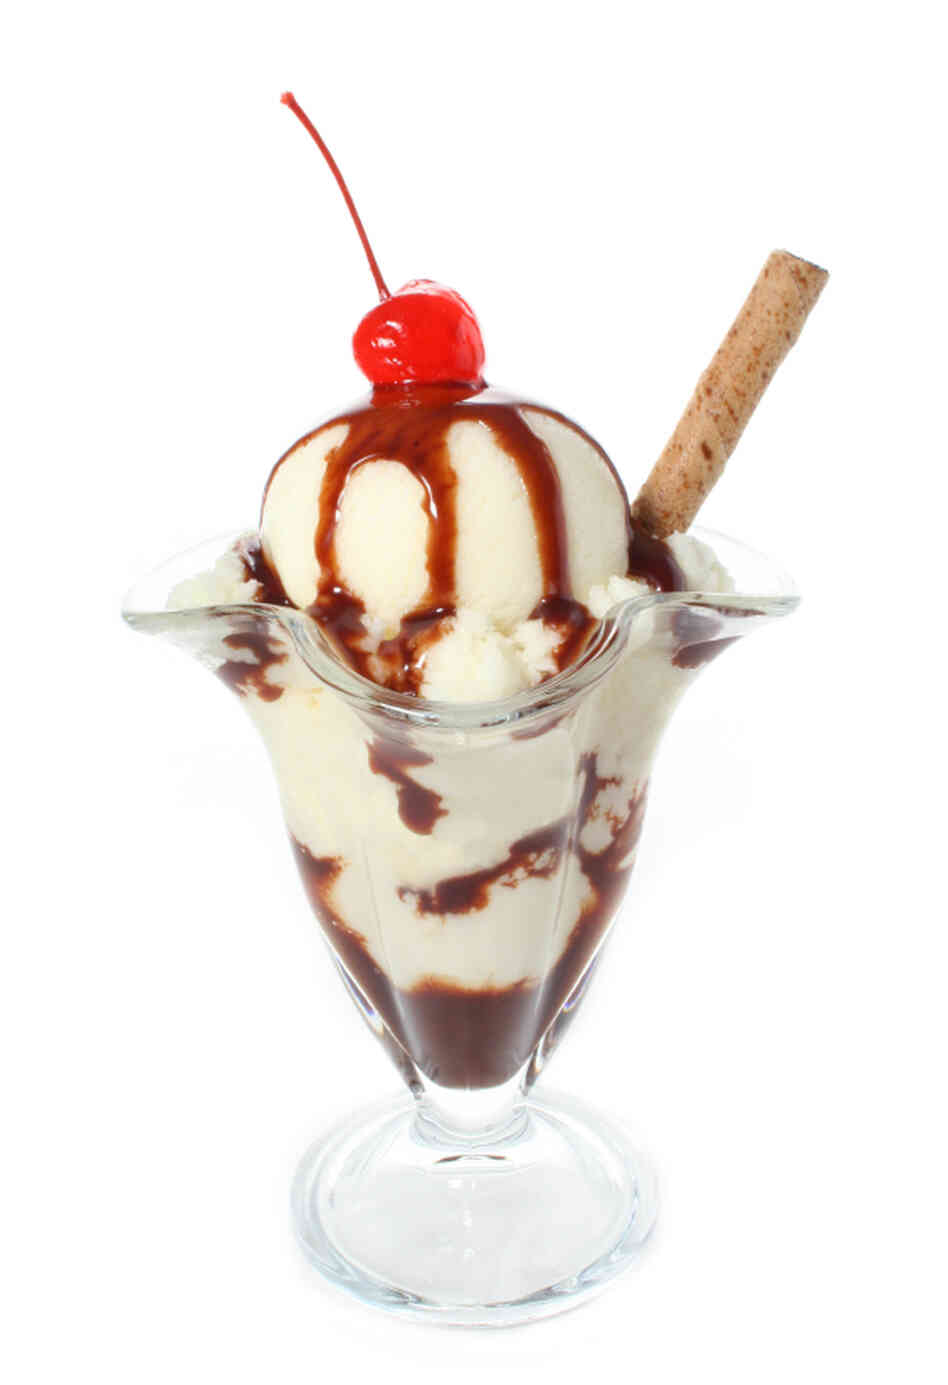 This is not a vegan sundae.